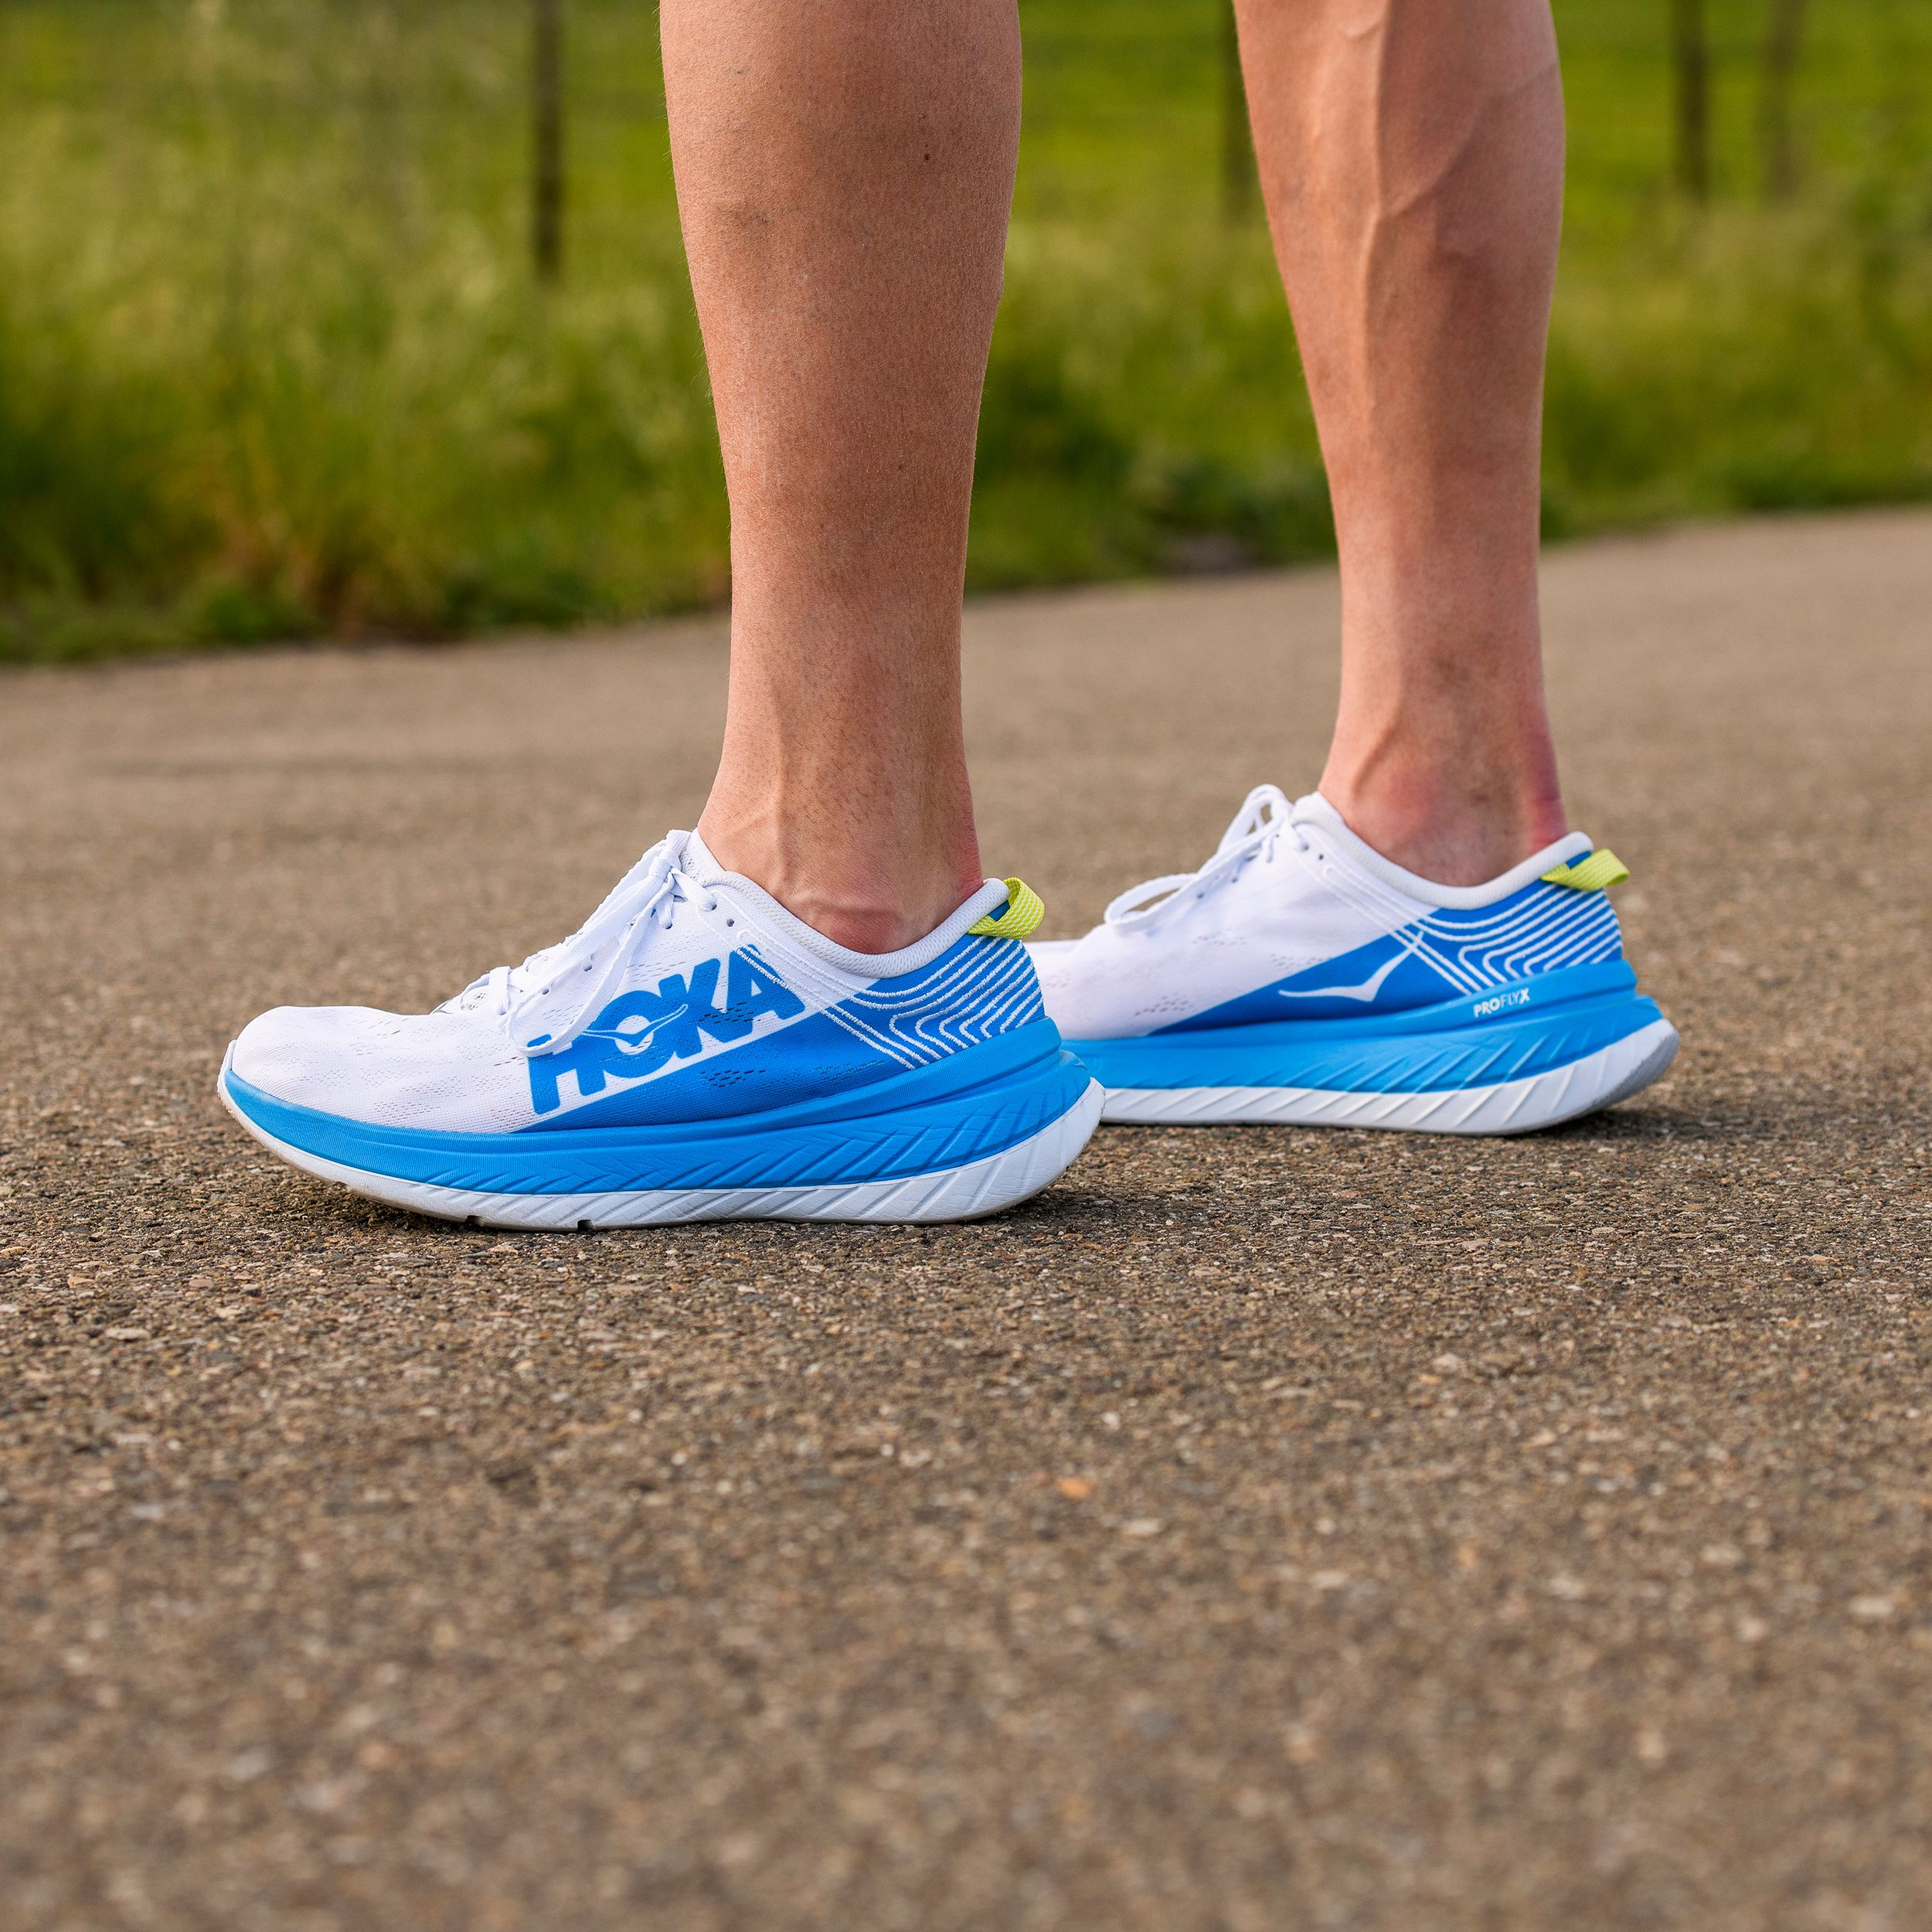 Designed For Speed And Endurance This Is Hoka S Project Carbon X Running Shoe